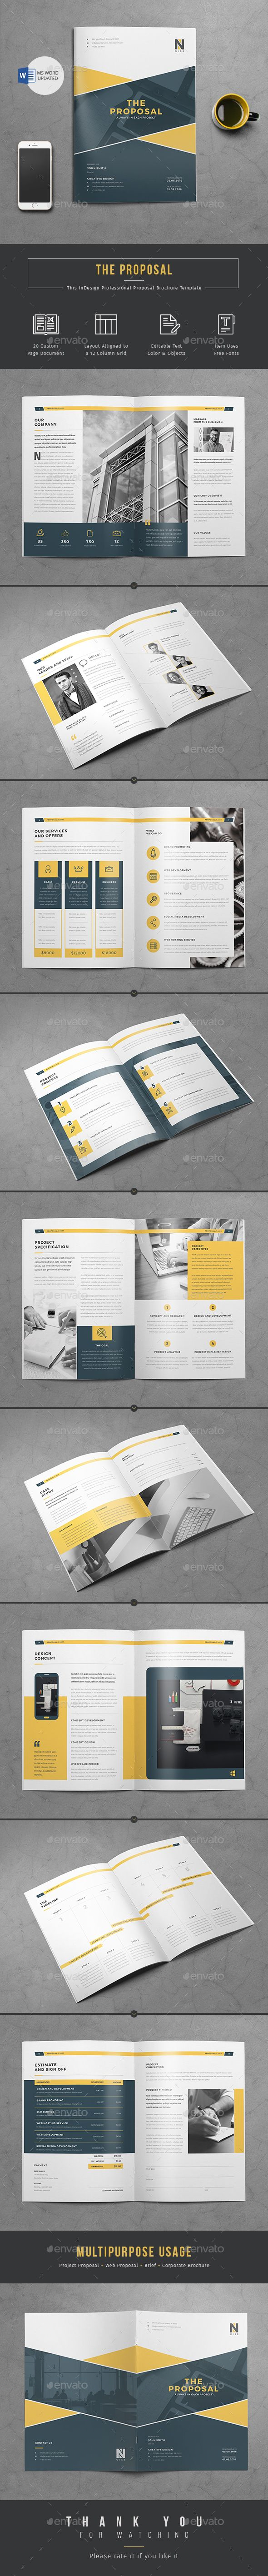 Proposal by themedevisers Proposal InDesign/Word Template Want to send a business or project proposal to prospective client? This 20 page Professional Bus